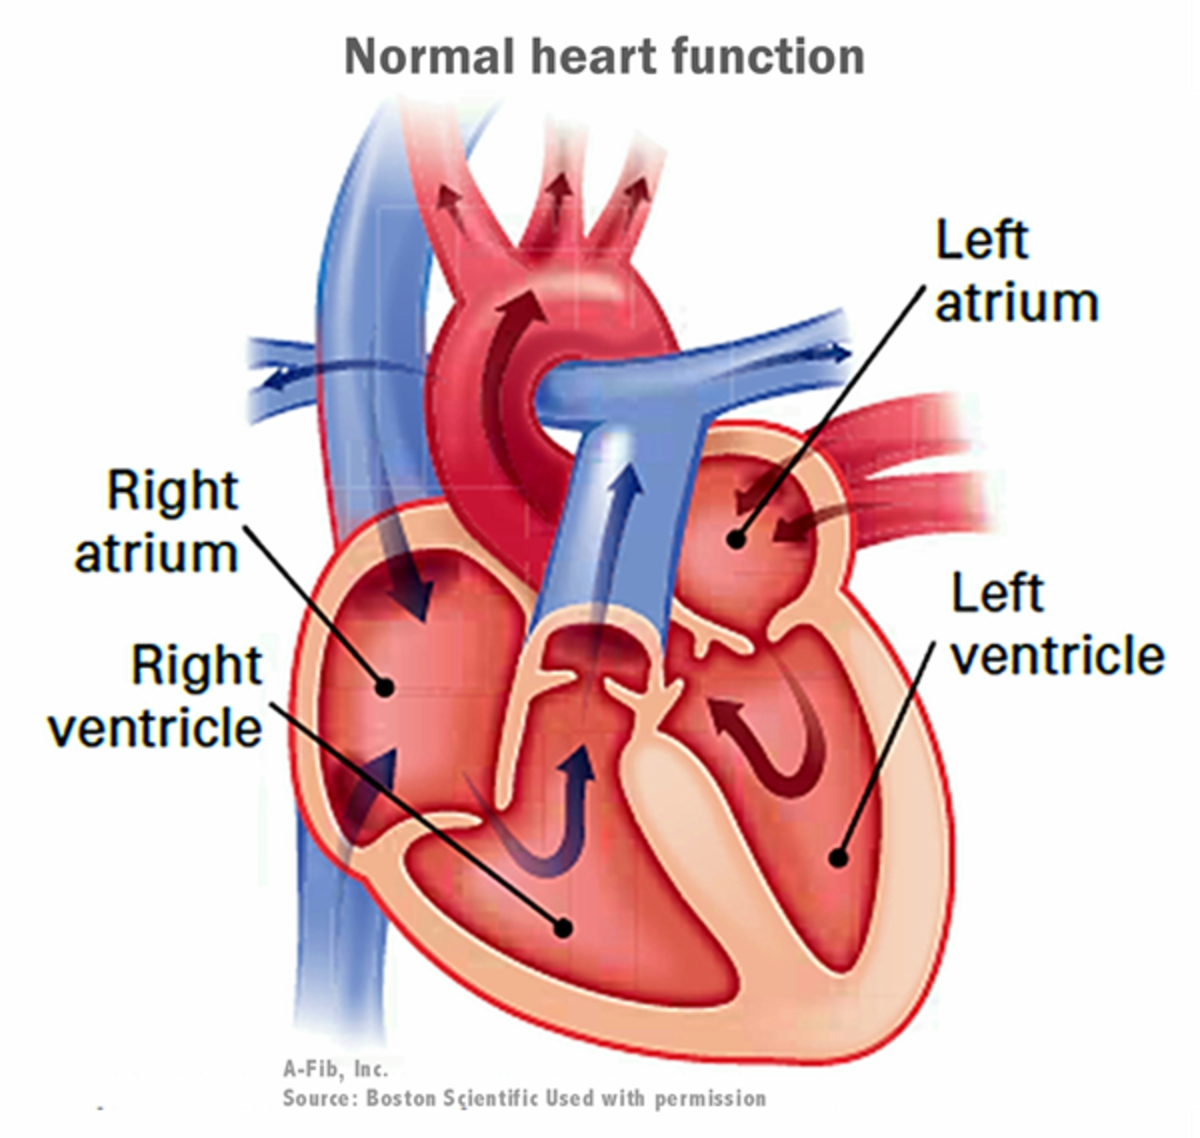 Normal heart function and blood flow.